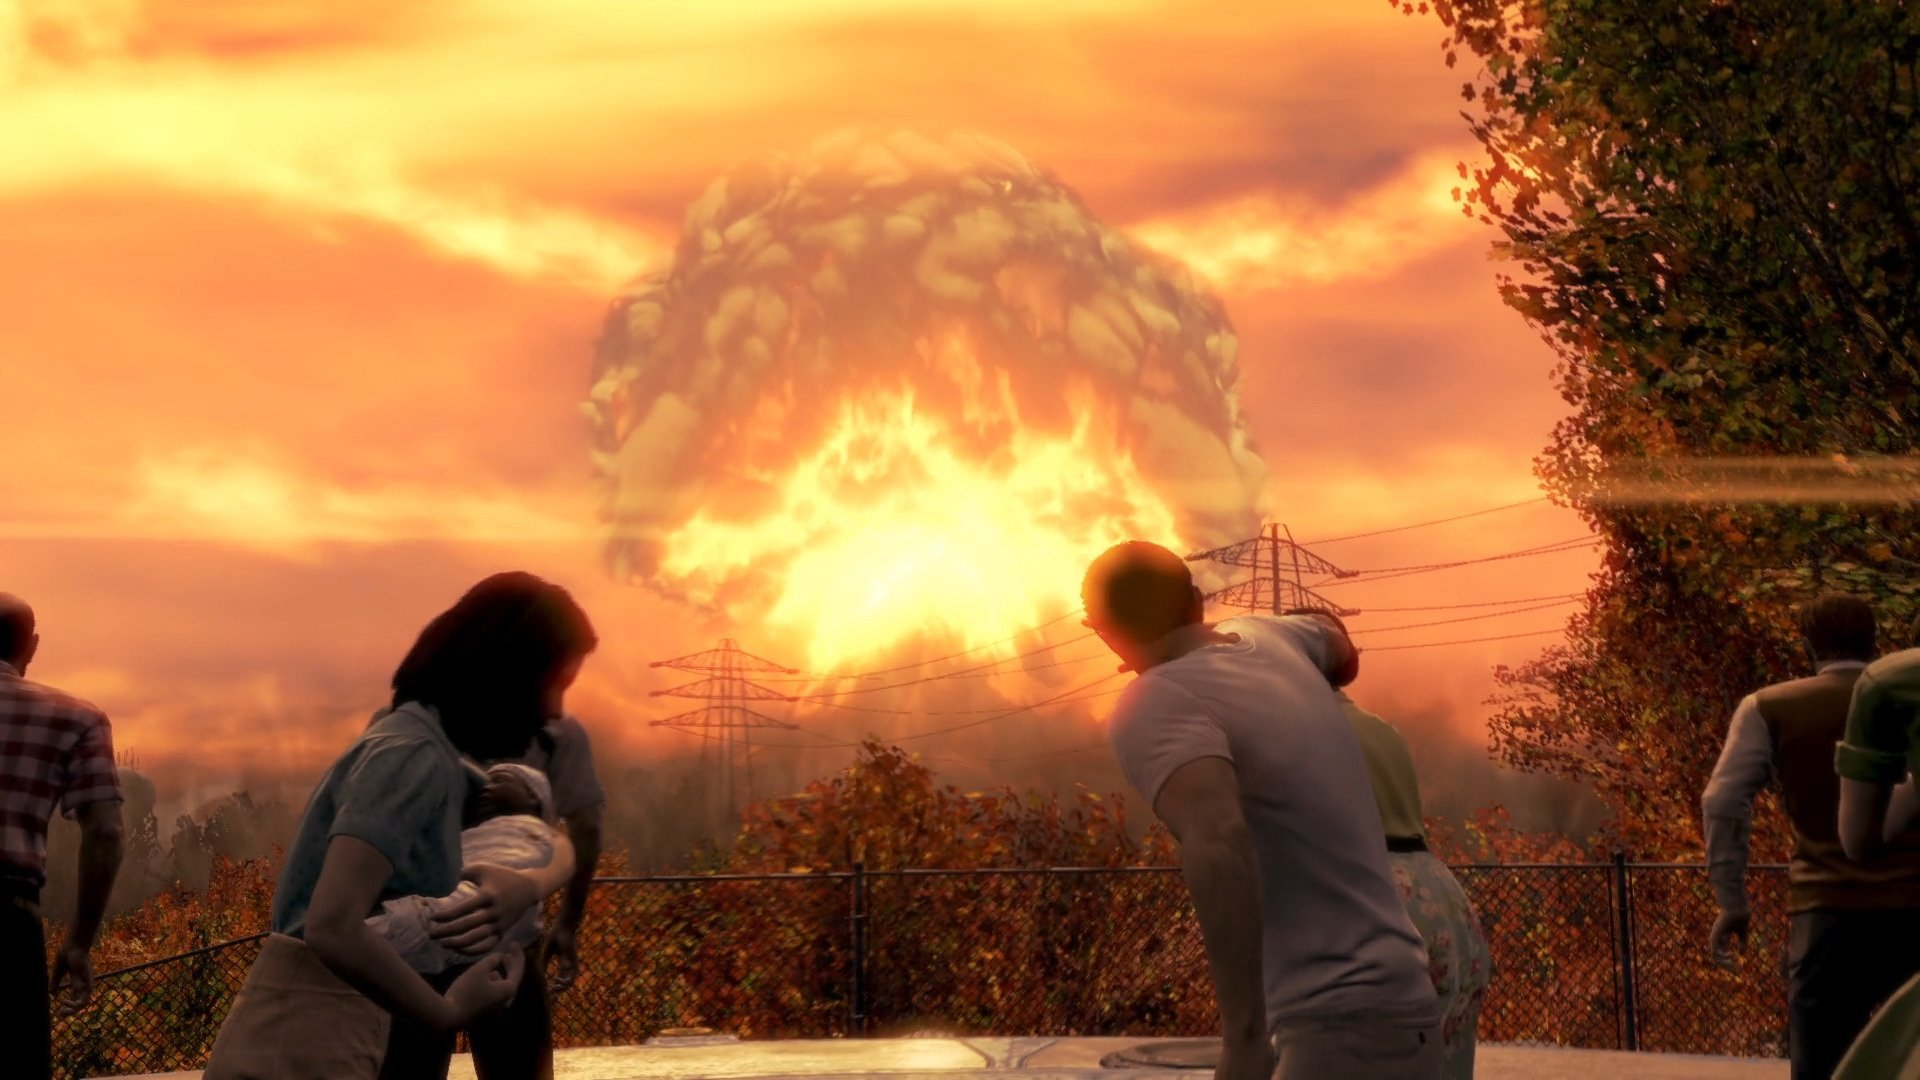 Fallout 76: players crash the server by launching atomic 3